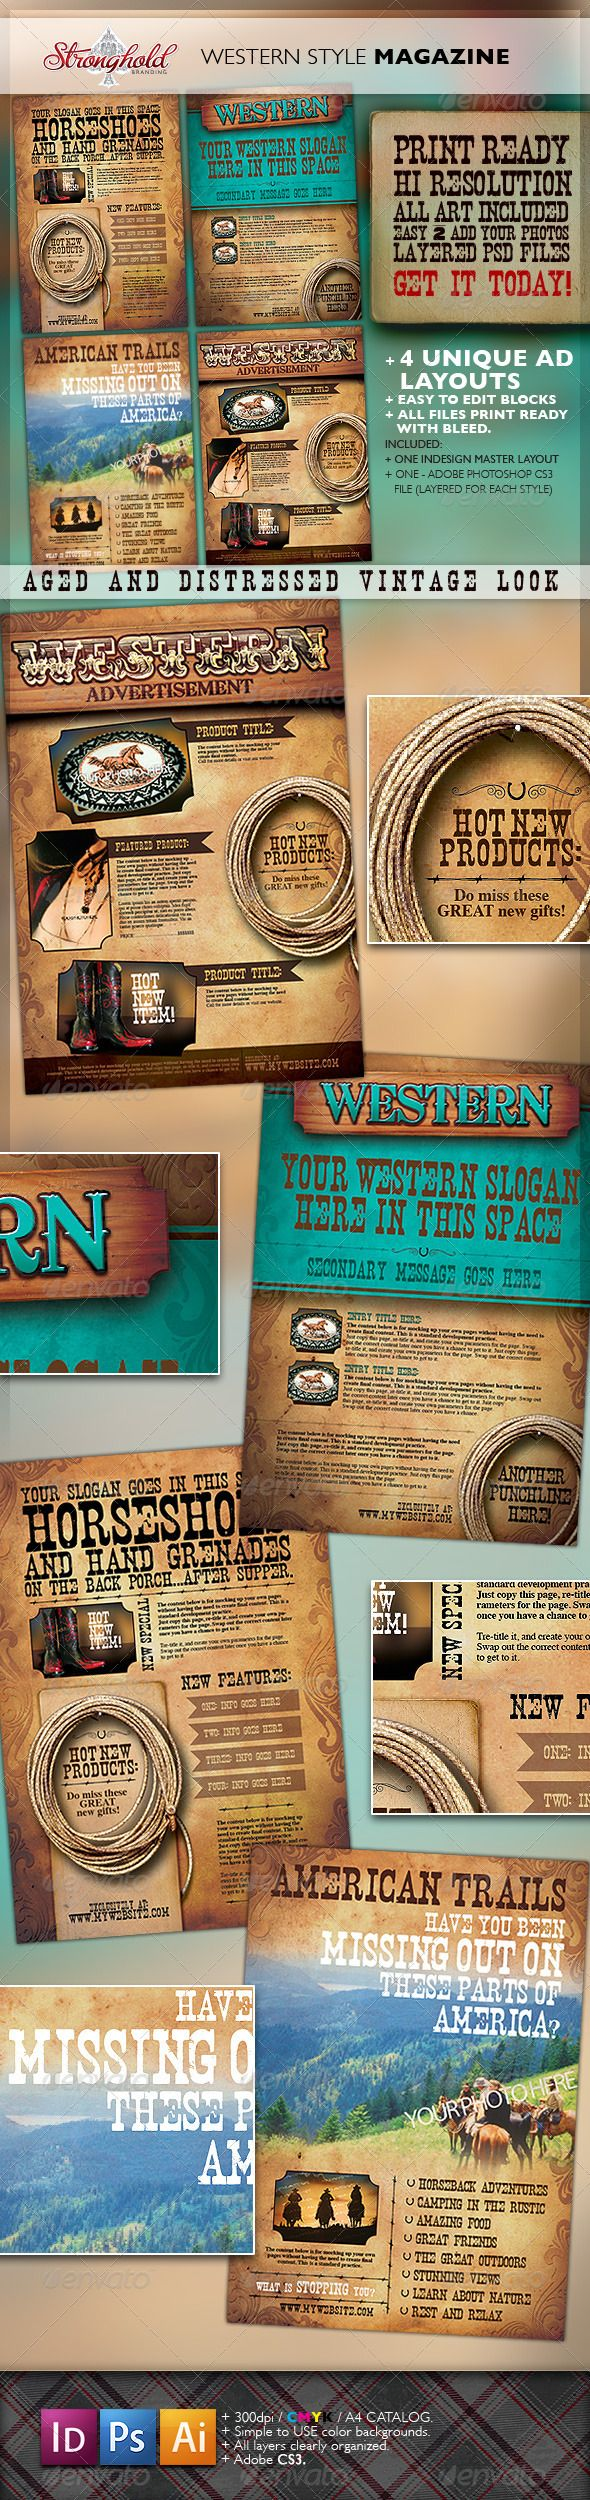 253 best design page layout images on pinterest lawyers flyers western vintage magazine ads by getstronghold western magazine ad templates size about perfect for all your western needdo miss the chance for 4 unique pronofoot35fo Image collections